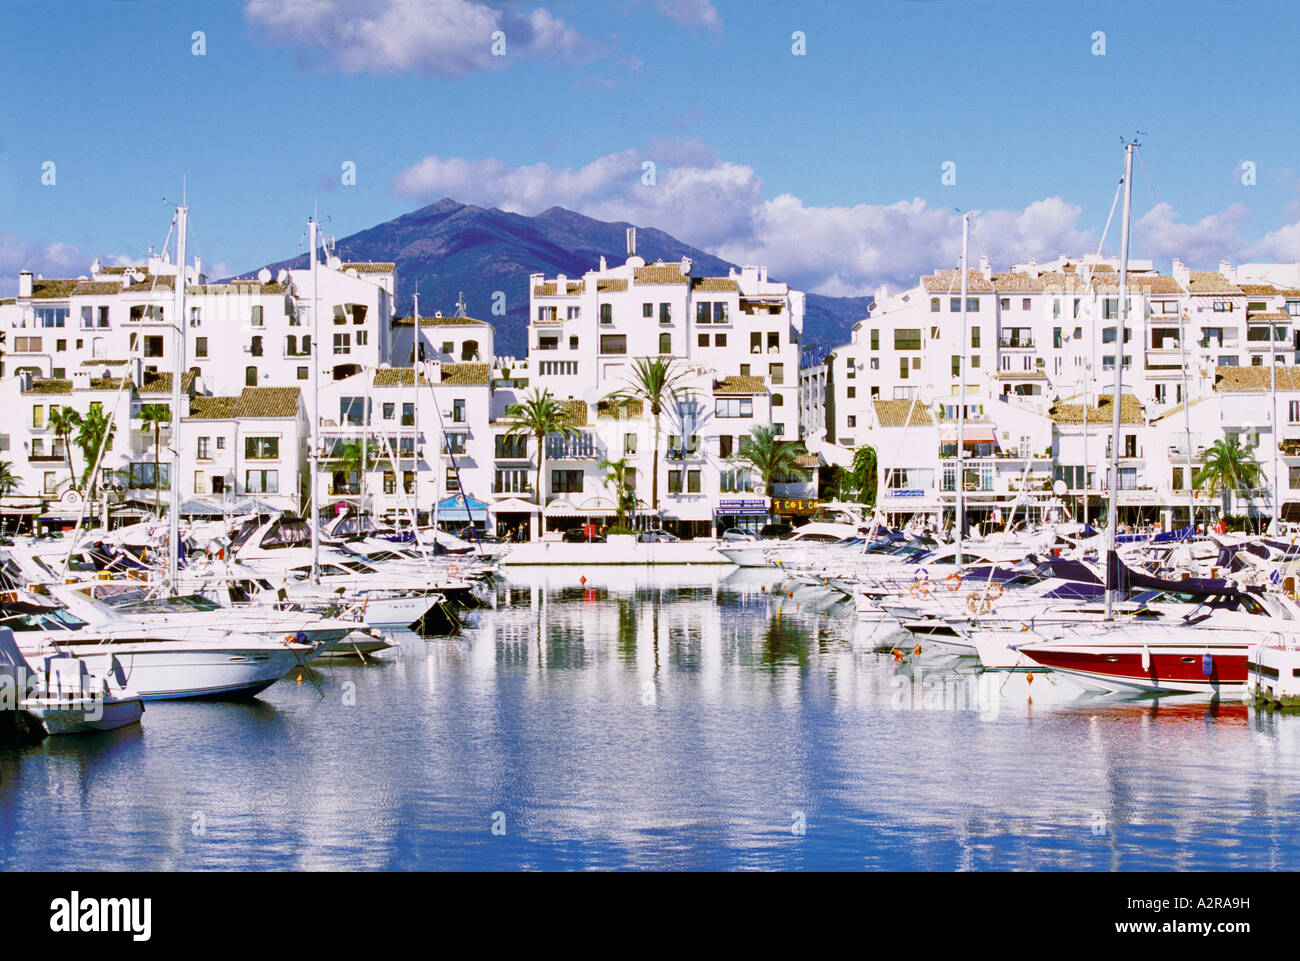 the marina and town at puerto banus costa del sol spain